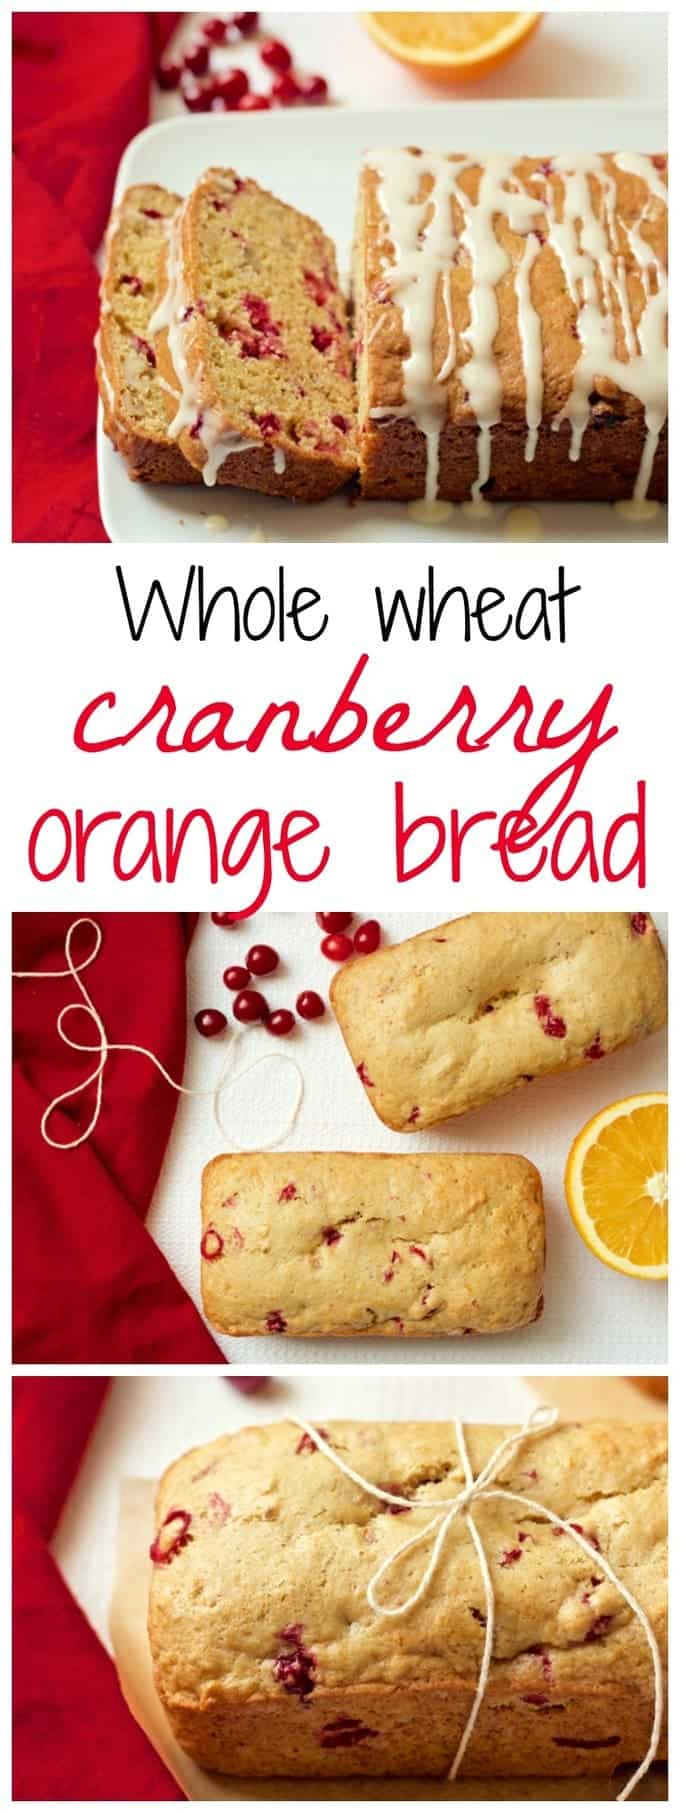 Whole wheat orange cranberry bread (with an optional citrus glaze) can be made as a large loaf or mini loaves - great for gifts or a holiday brunch! | FamilyFoodontheTable.com